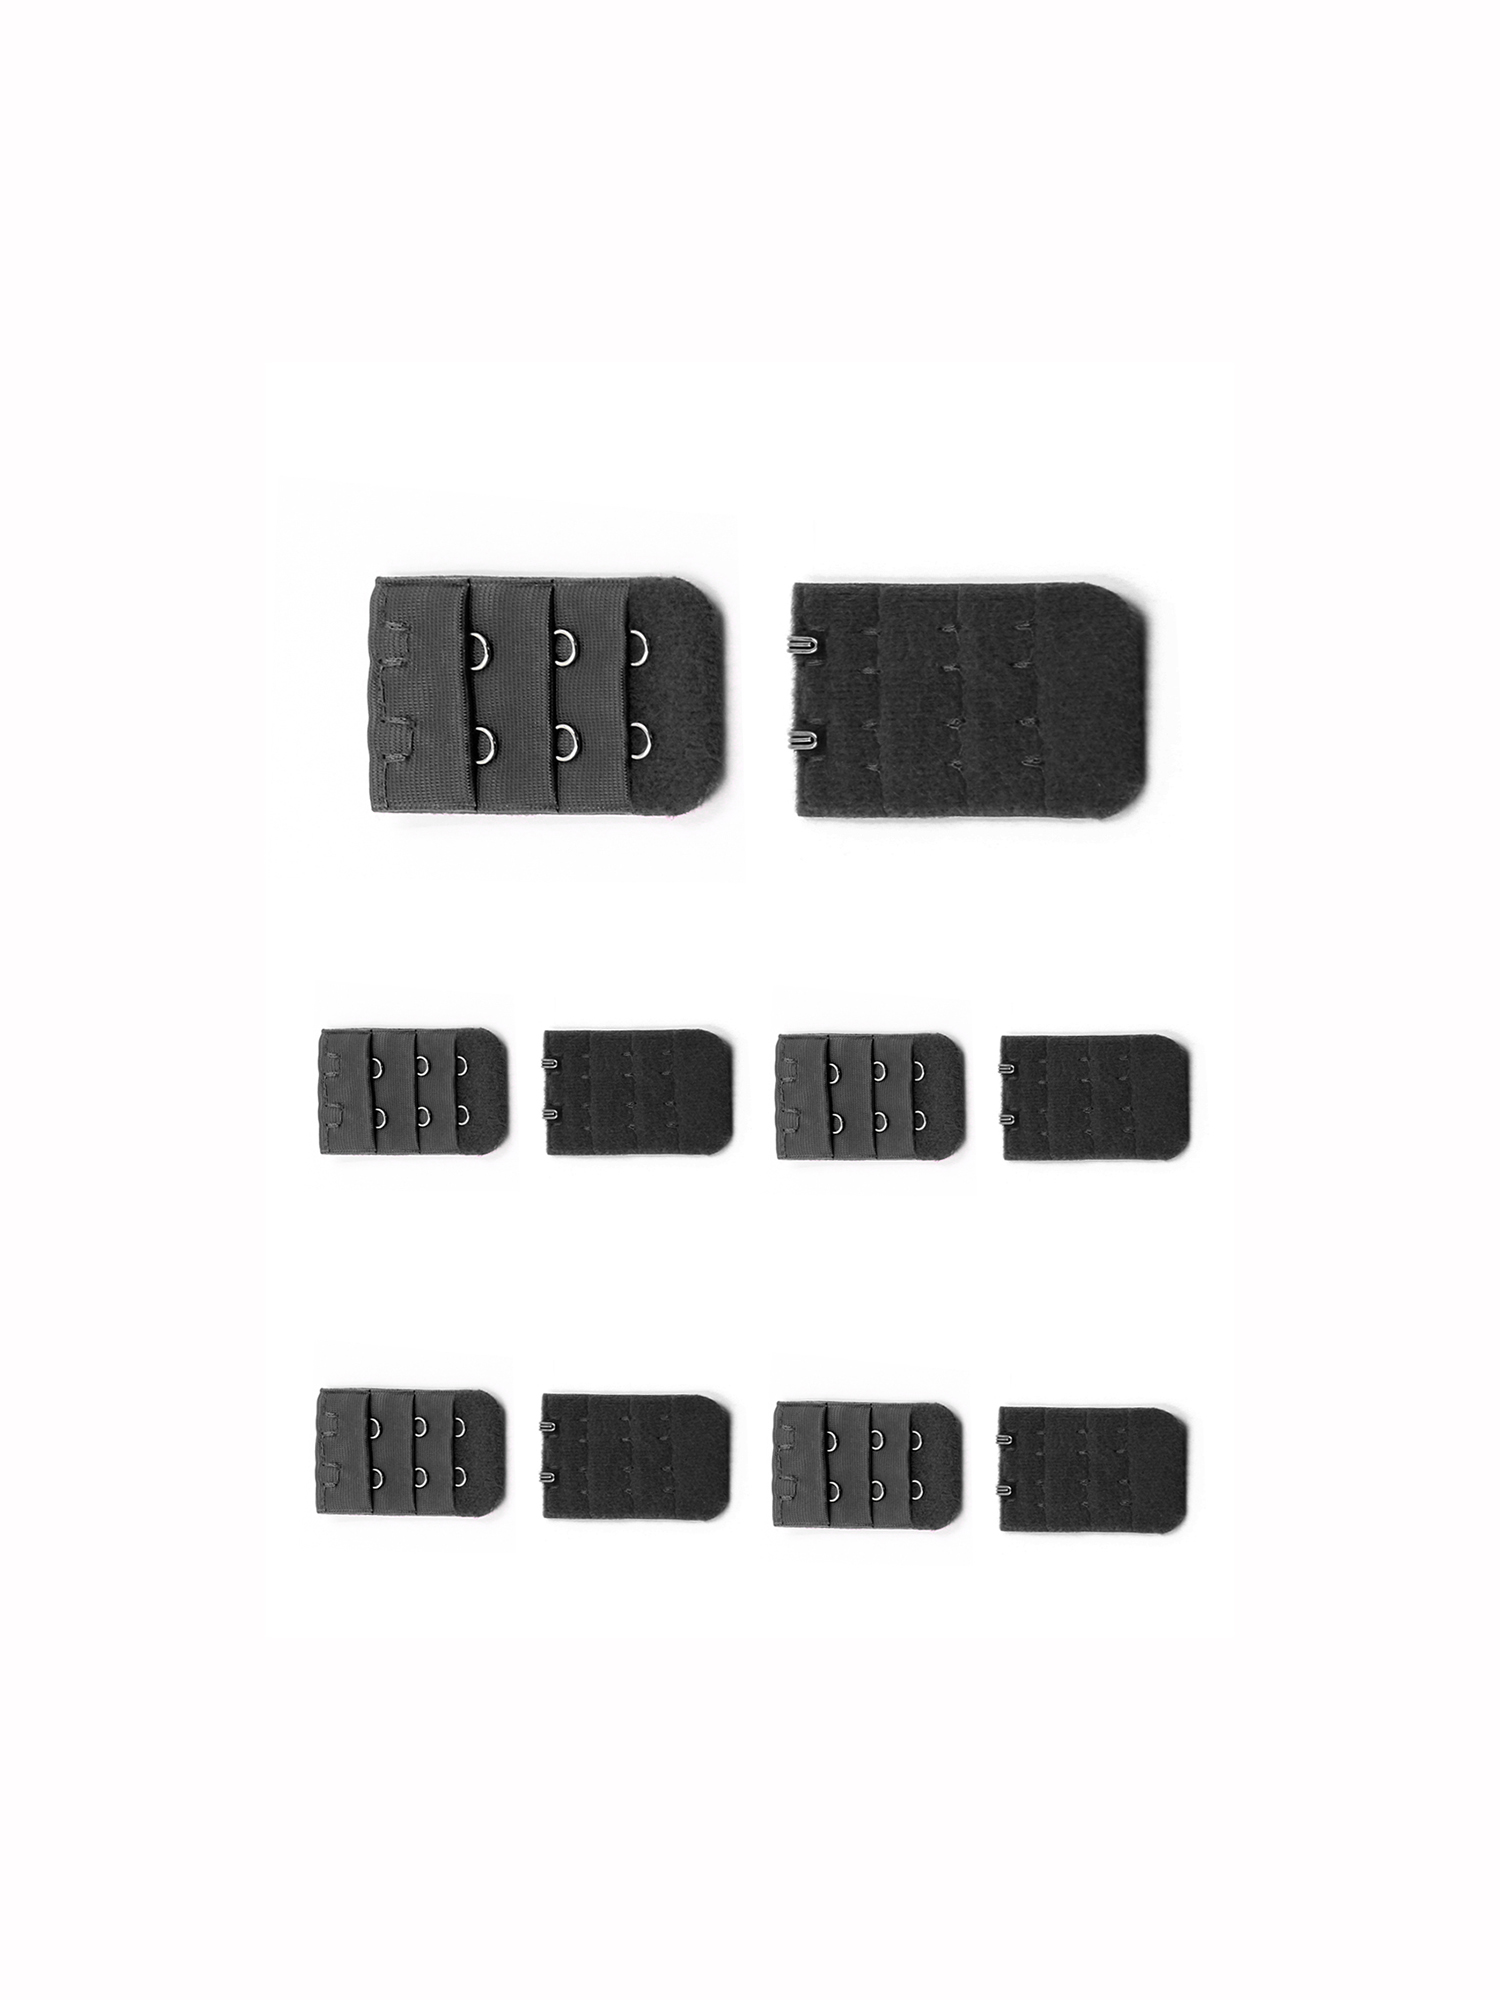 d322b4be43 Unique-Bargains Women s 3 Rows 2 Hooks Underwear Replacement Bra Extender  Strap Adapter 10 Pcs